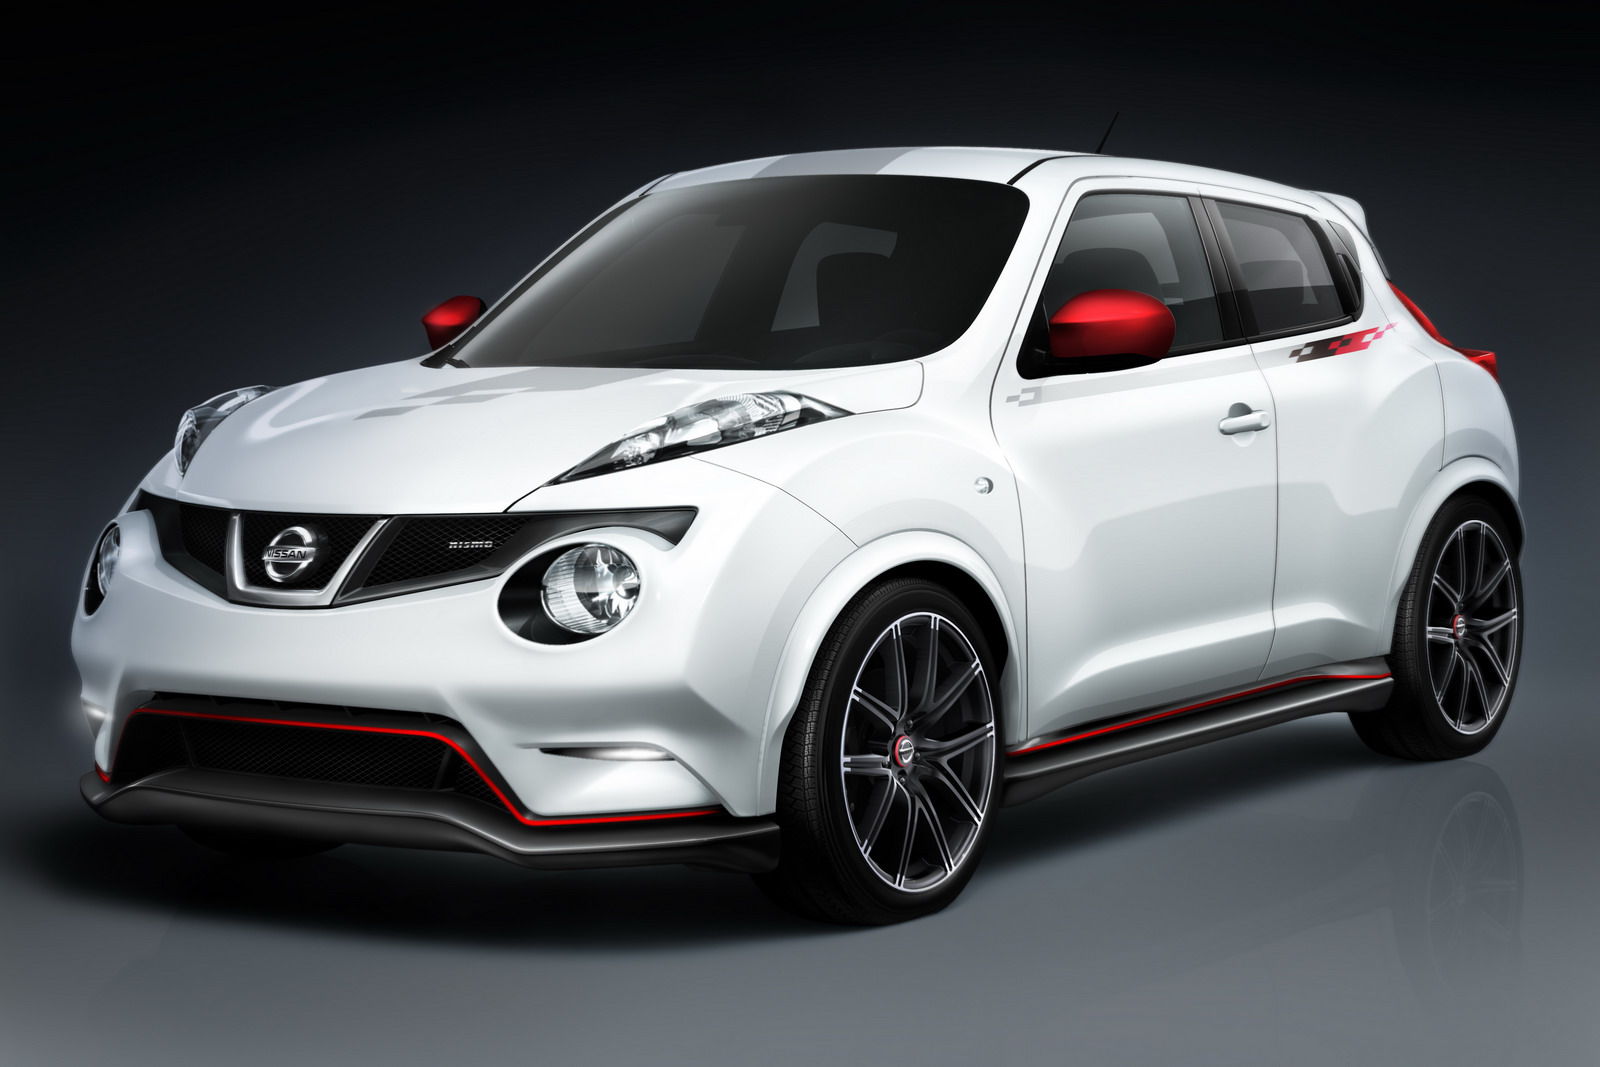 New Nissan Juke New 2012 Nissan Juke Nismo Concept Launches In The Tokyo